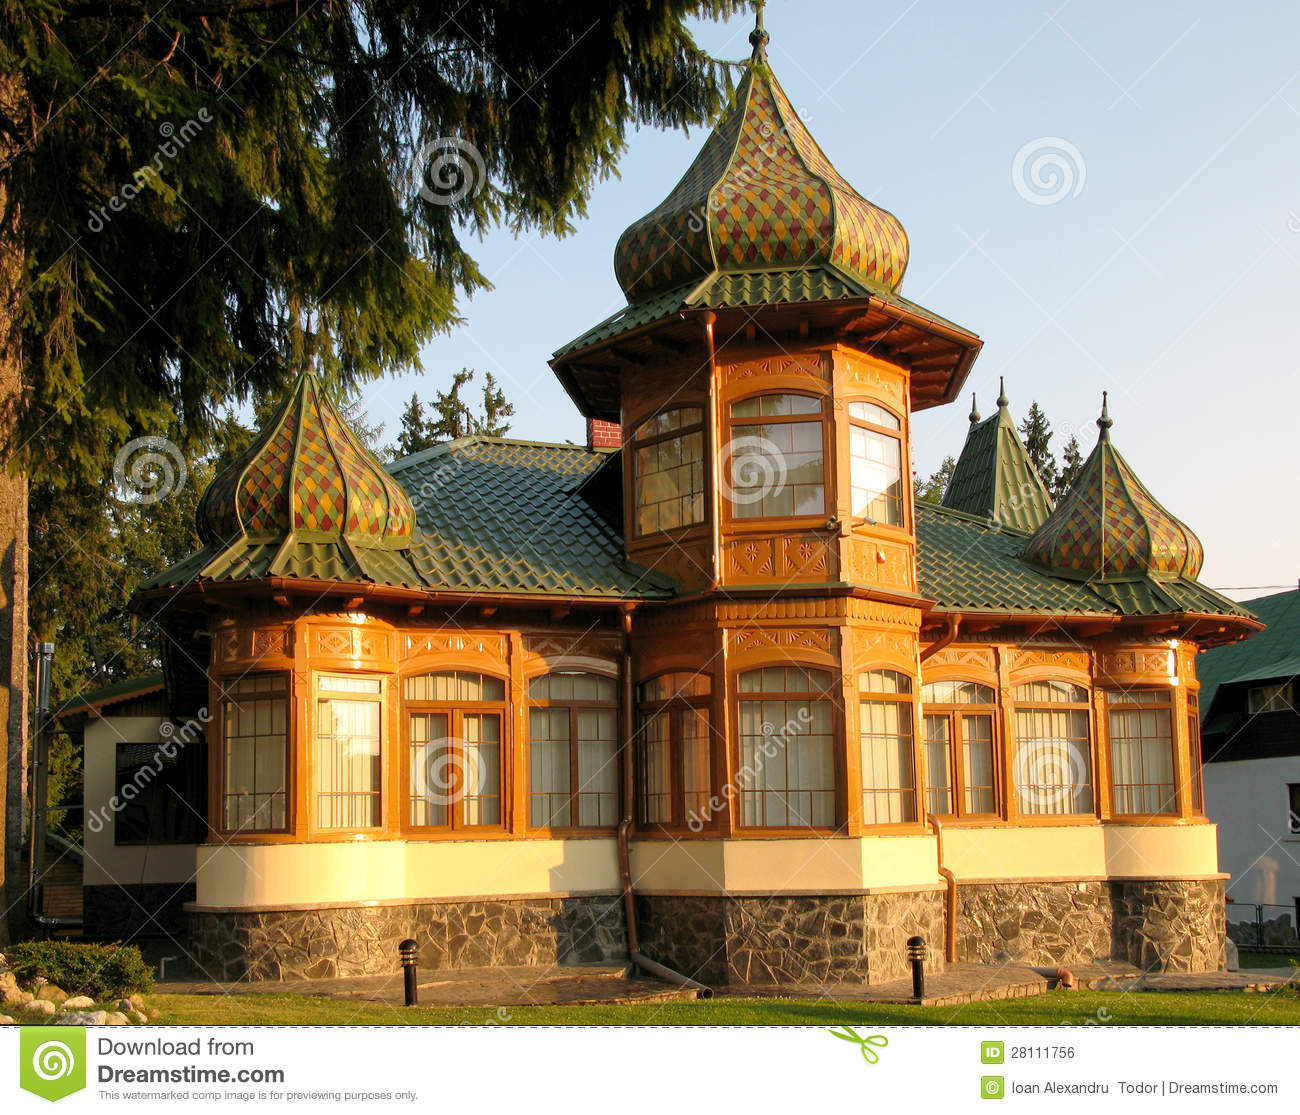 Russian architecture house, roof and wooden walls